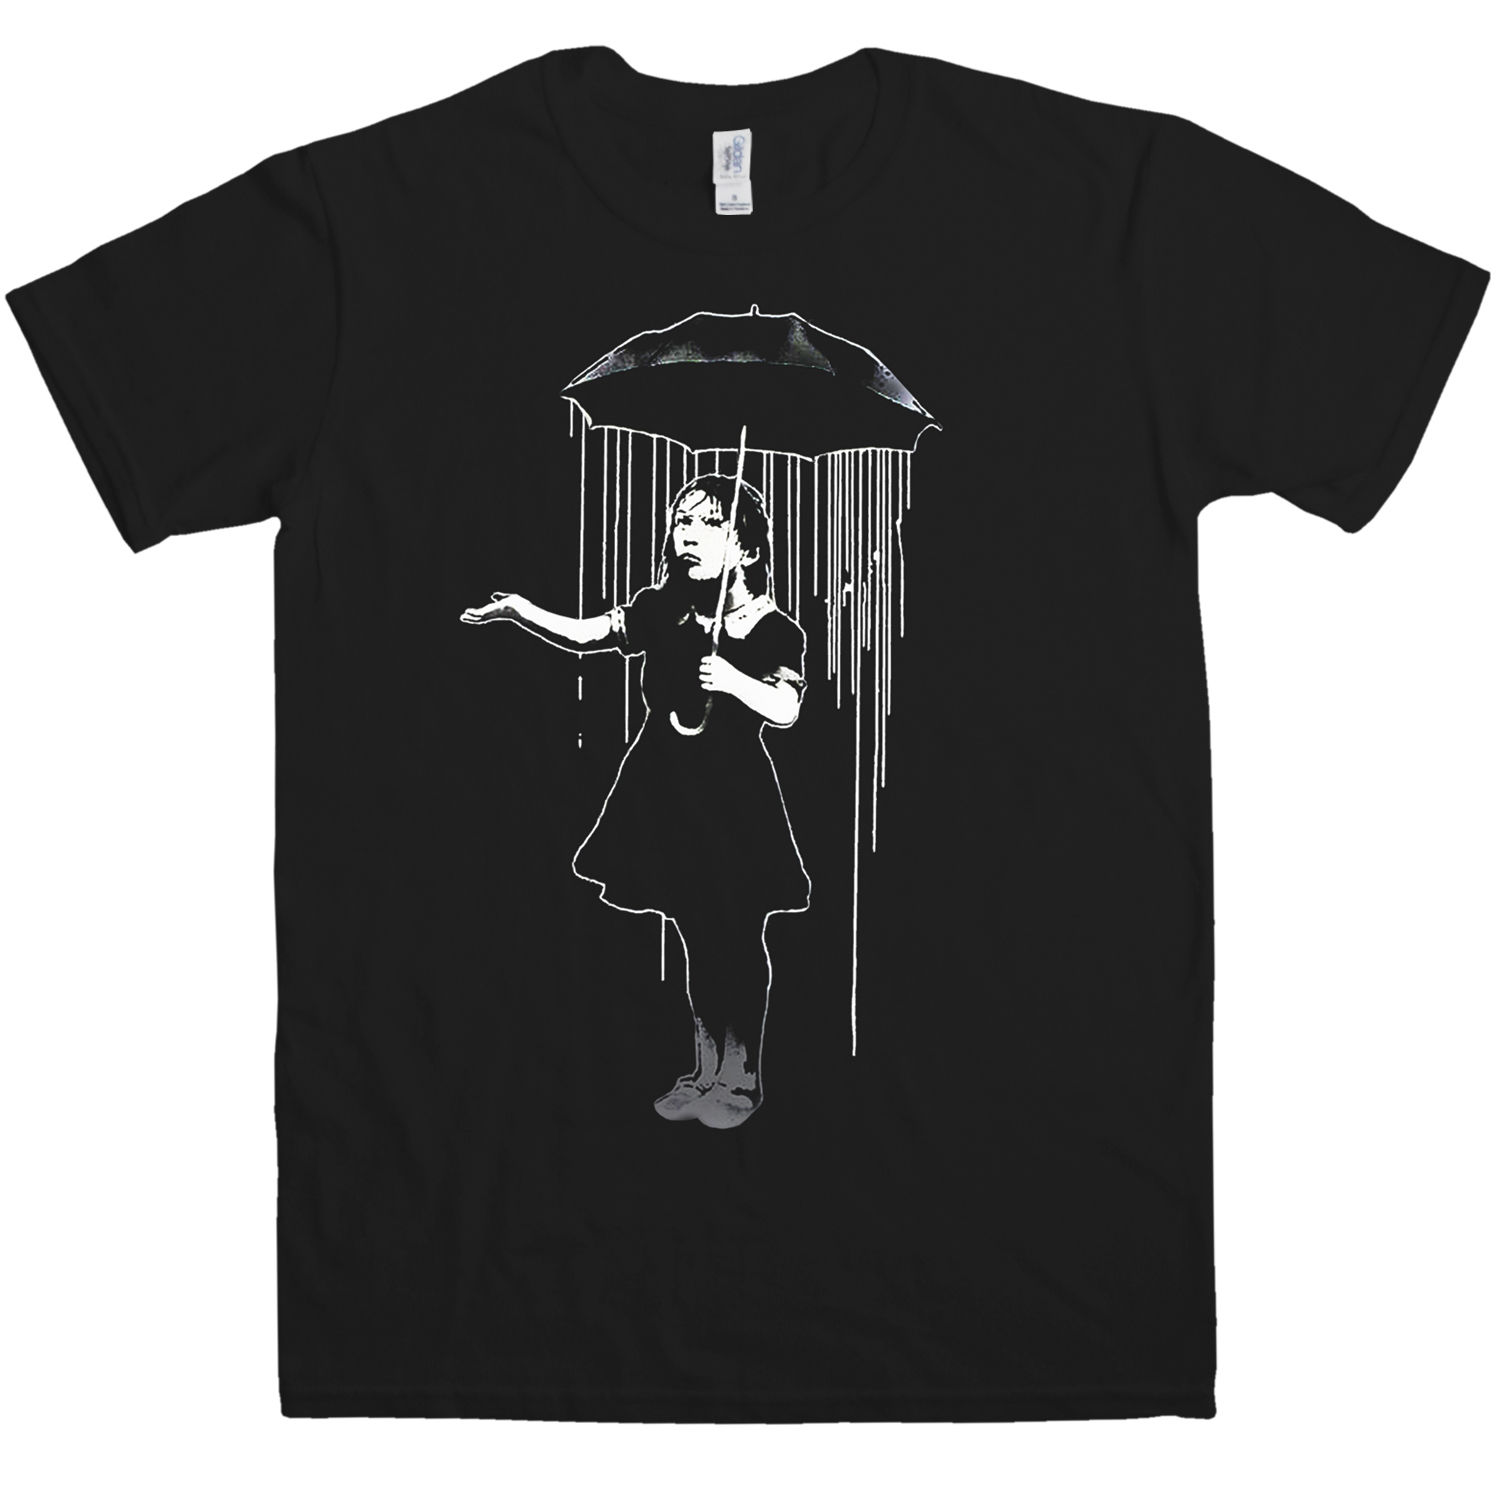 Mens T-Shirt Mens Banksy T Shirt - Nola Quality Print New Summer Style Cotton Short